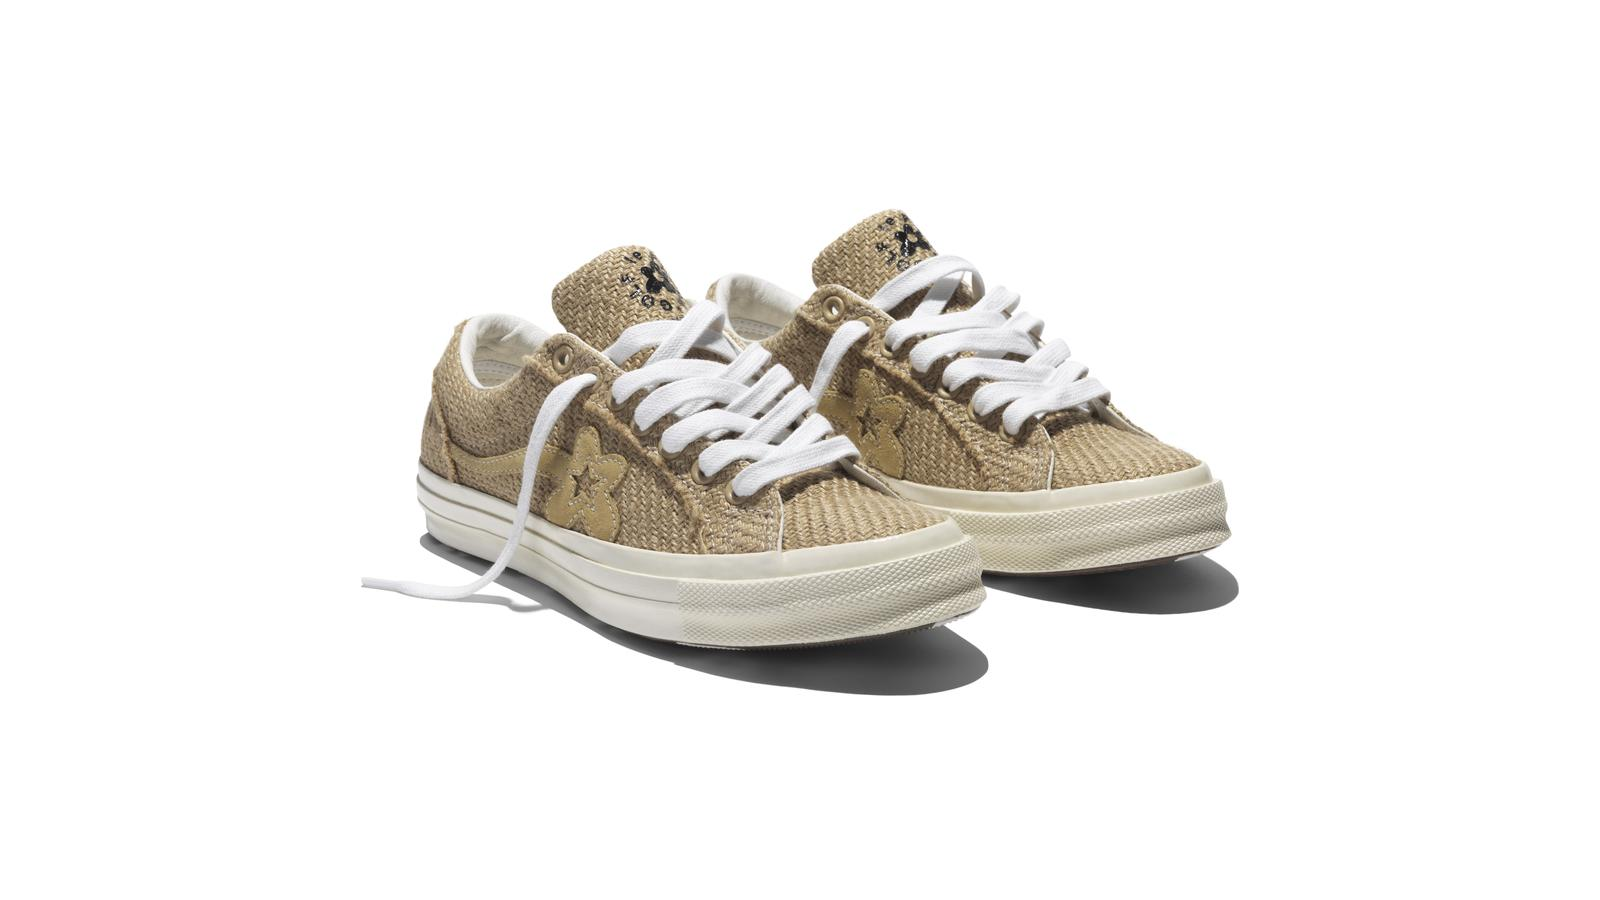 Converse one star burlap hd 1600